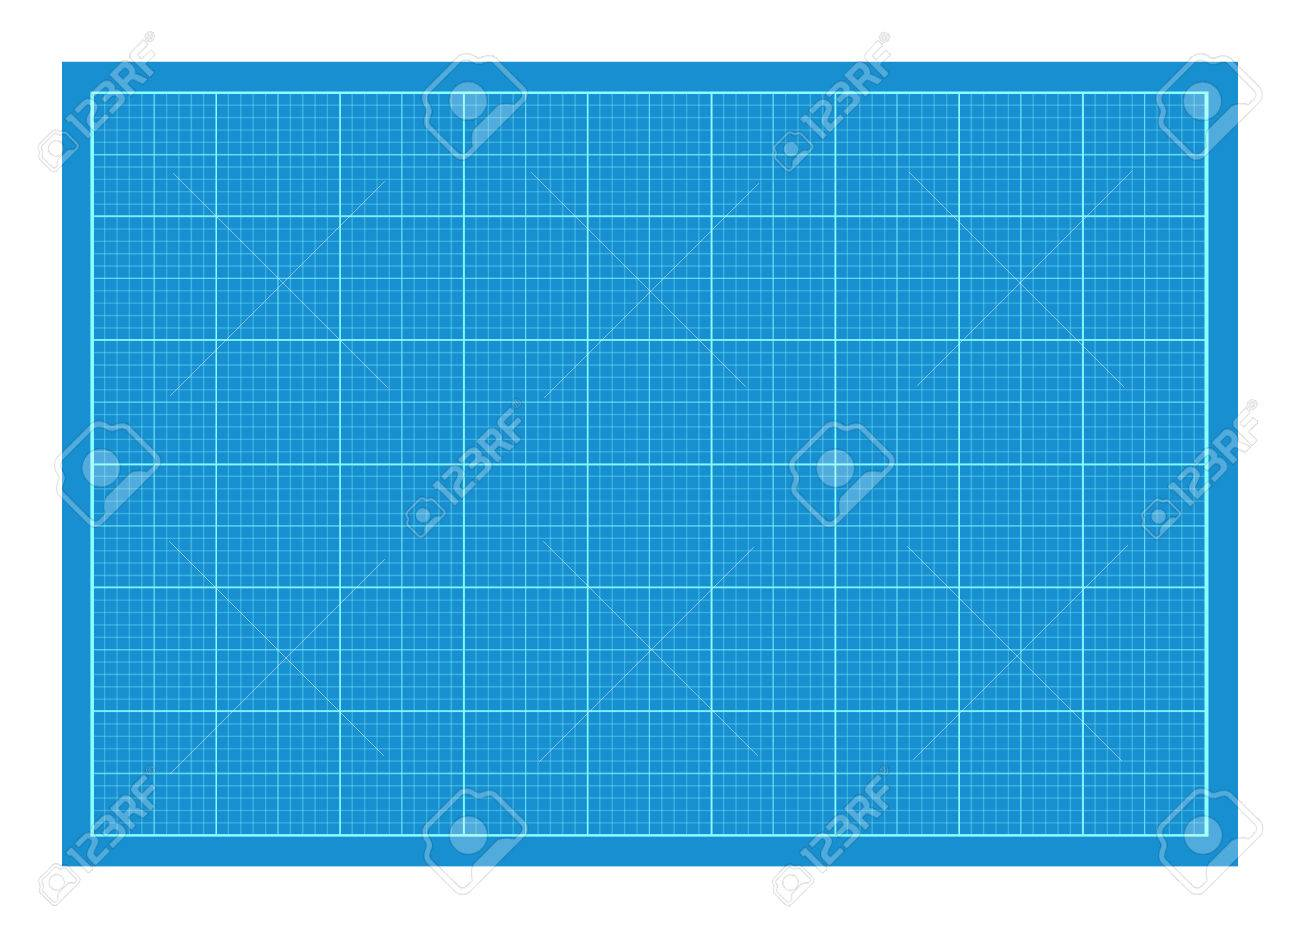 Sheet of blueprint paper royalty free cliparts vectors and stock sheet of blueprint paper stock vector 25740034 malvernweather Images